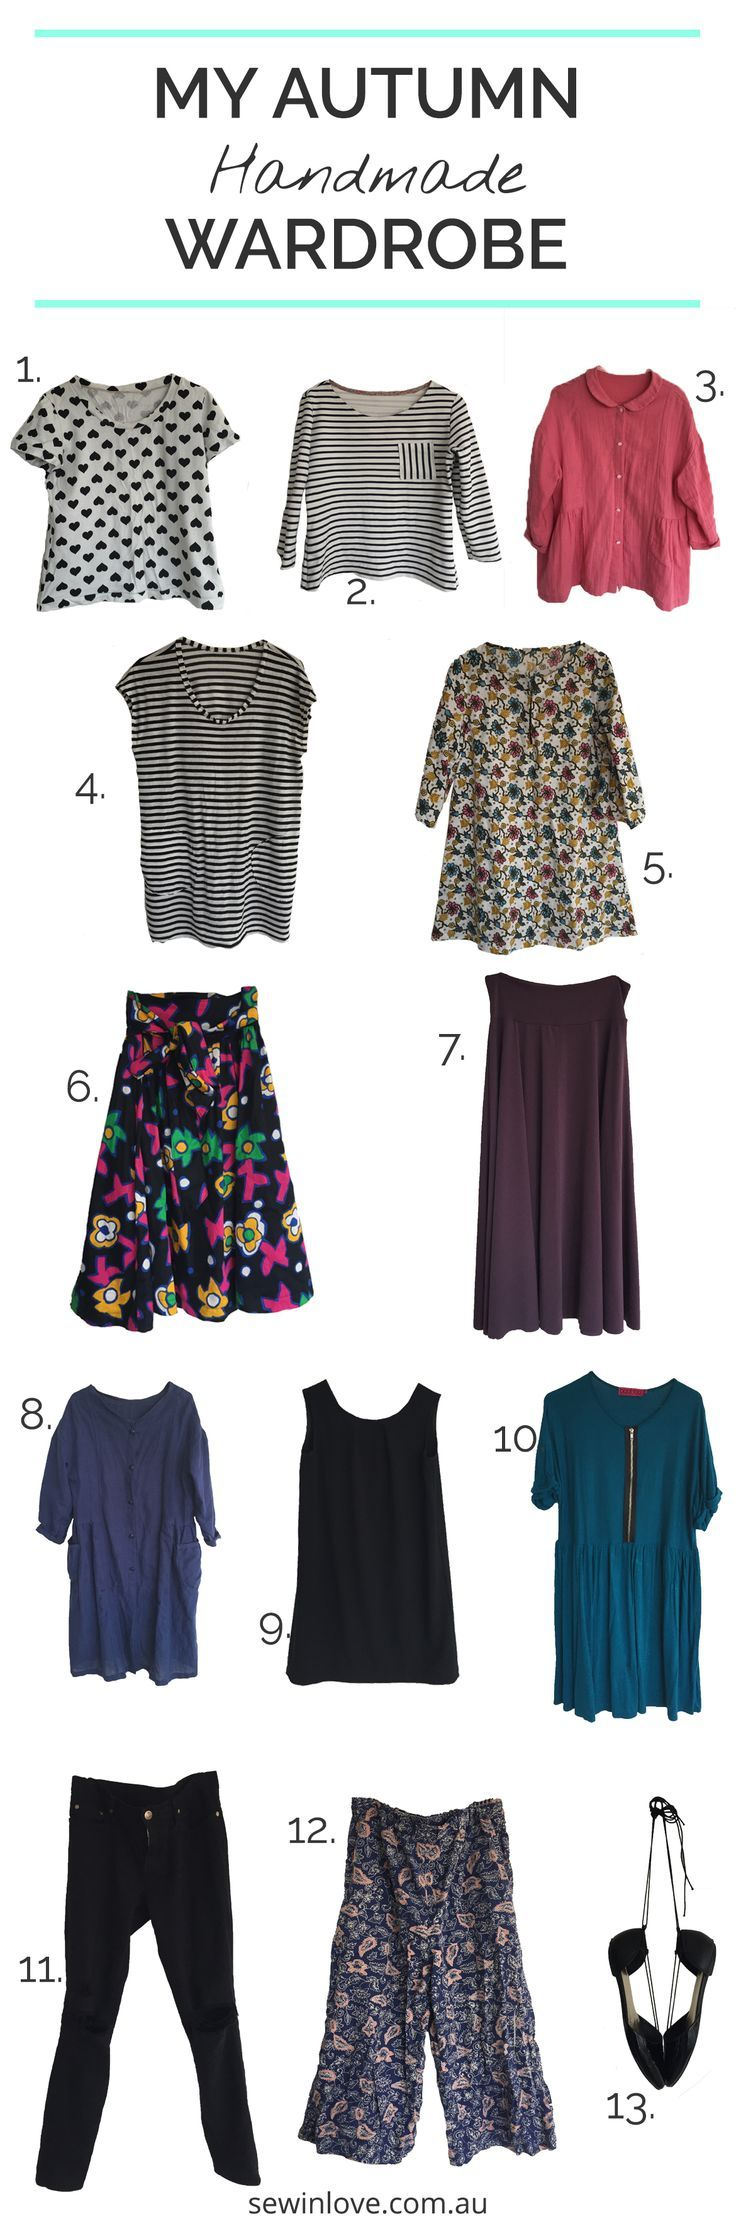 My Handmade Clothes | This is a fall capsule wardrobe made of handmade clothing items. Each piece has its own unique story!